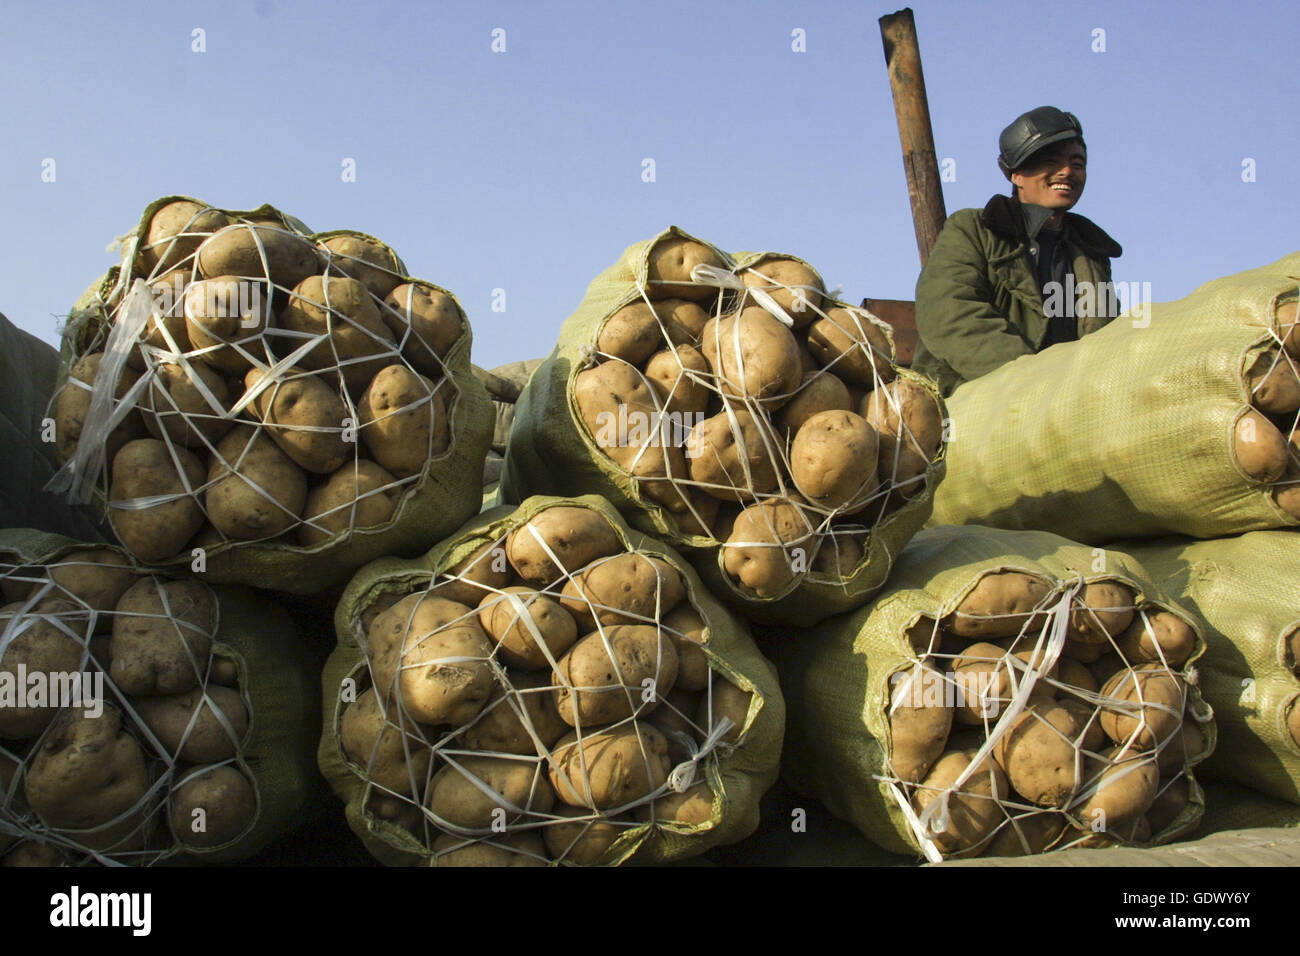 A worker sits besides some potatoes at a market - Stock Image